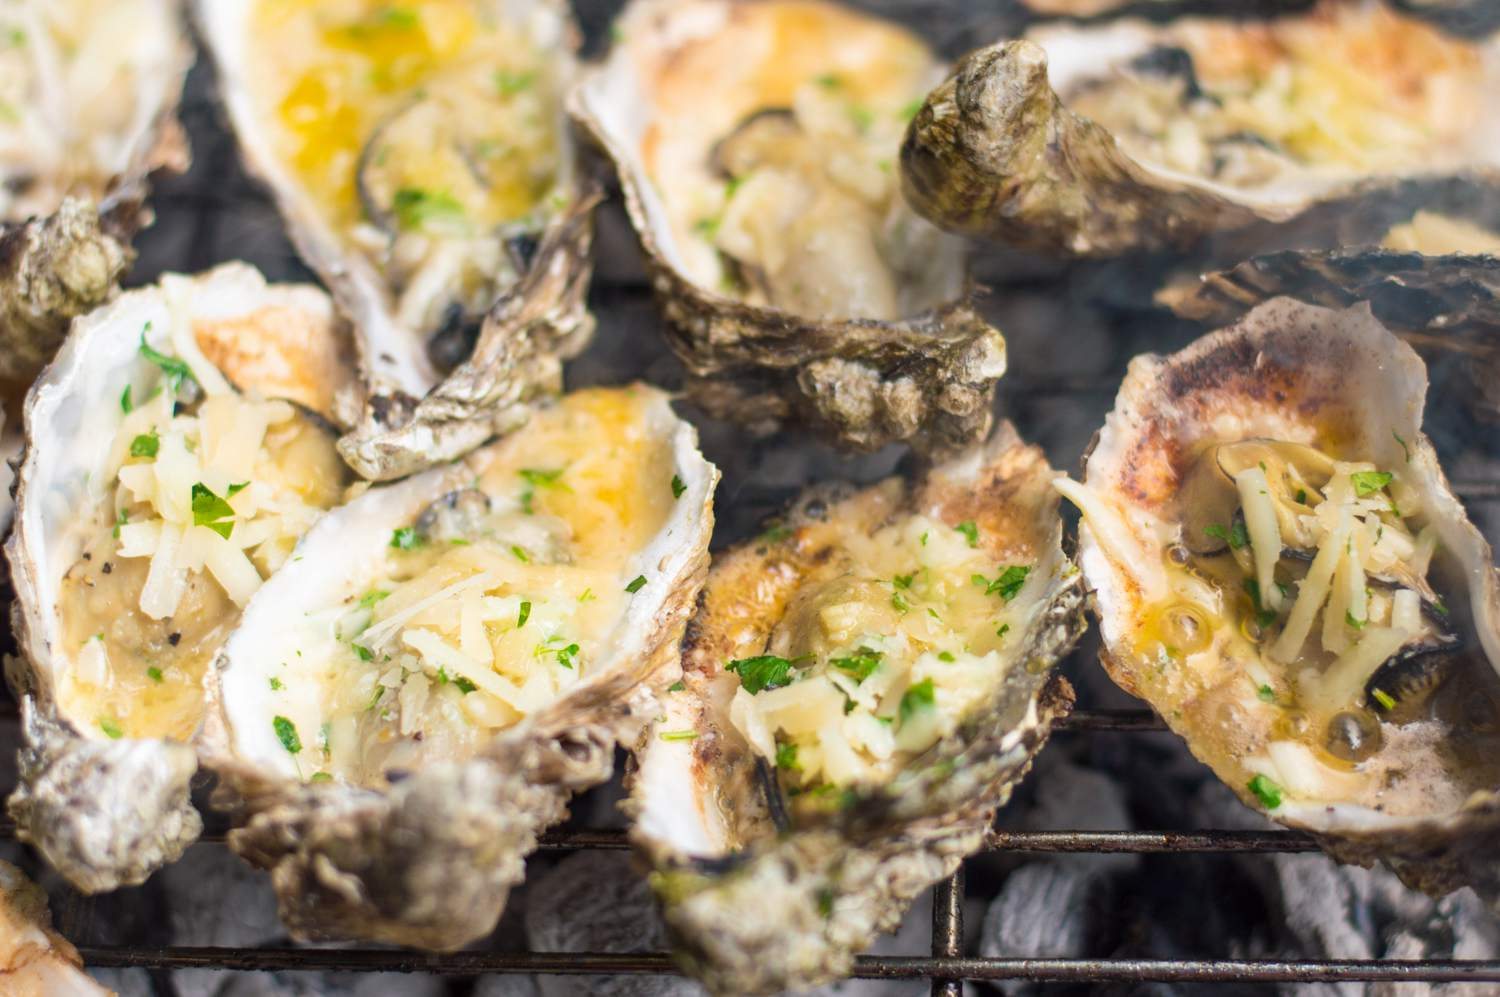 Charbroiled oysters with cheese